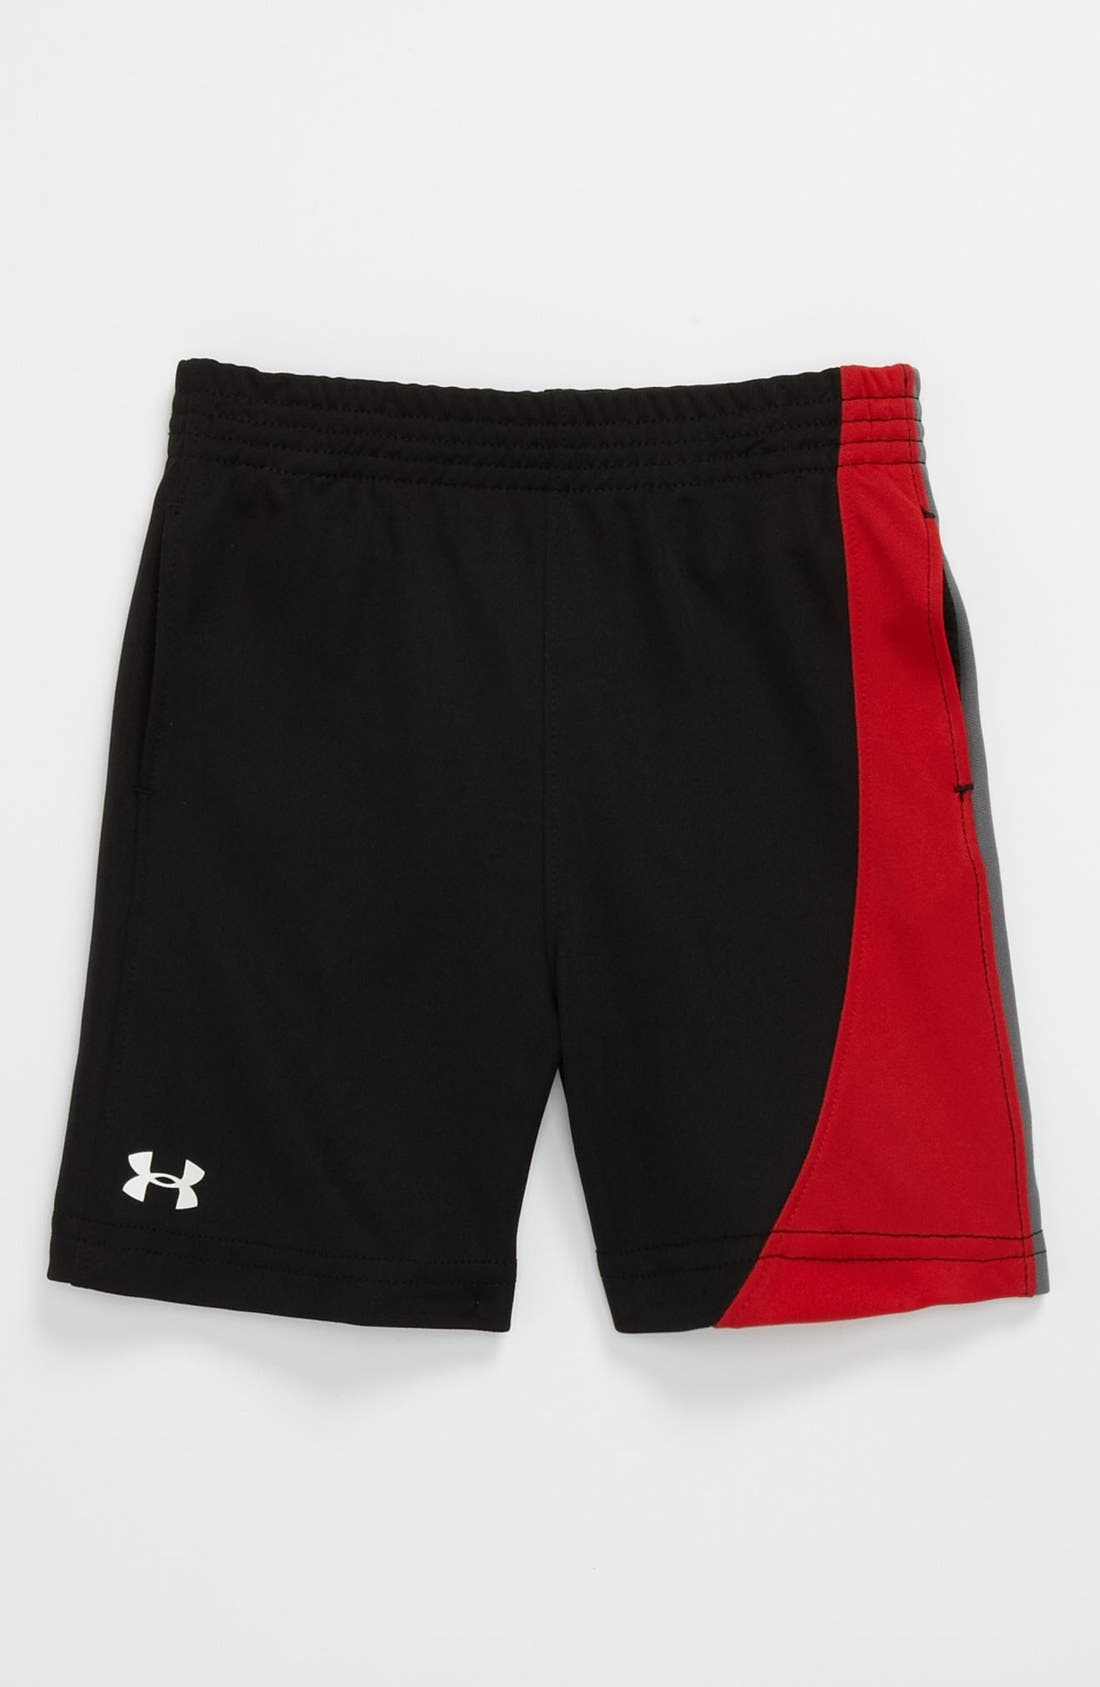 Main Image - Under Armour 'Flip' Shorts (Toddler)